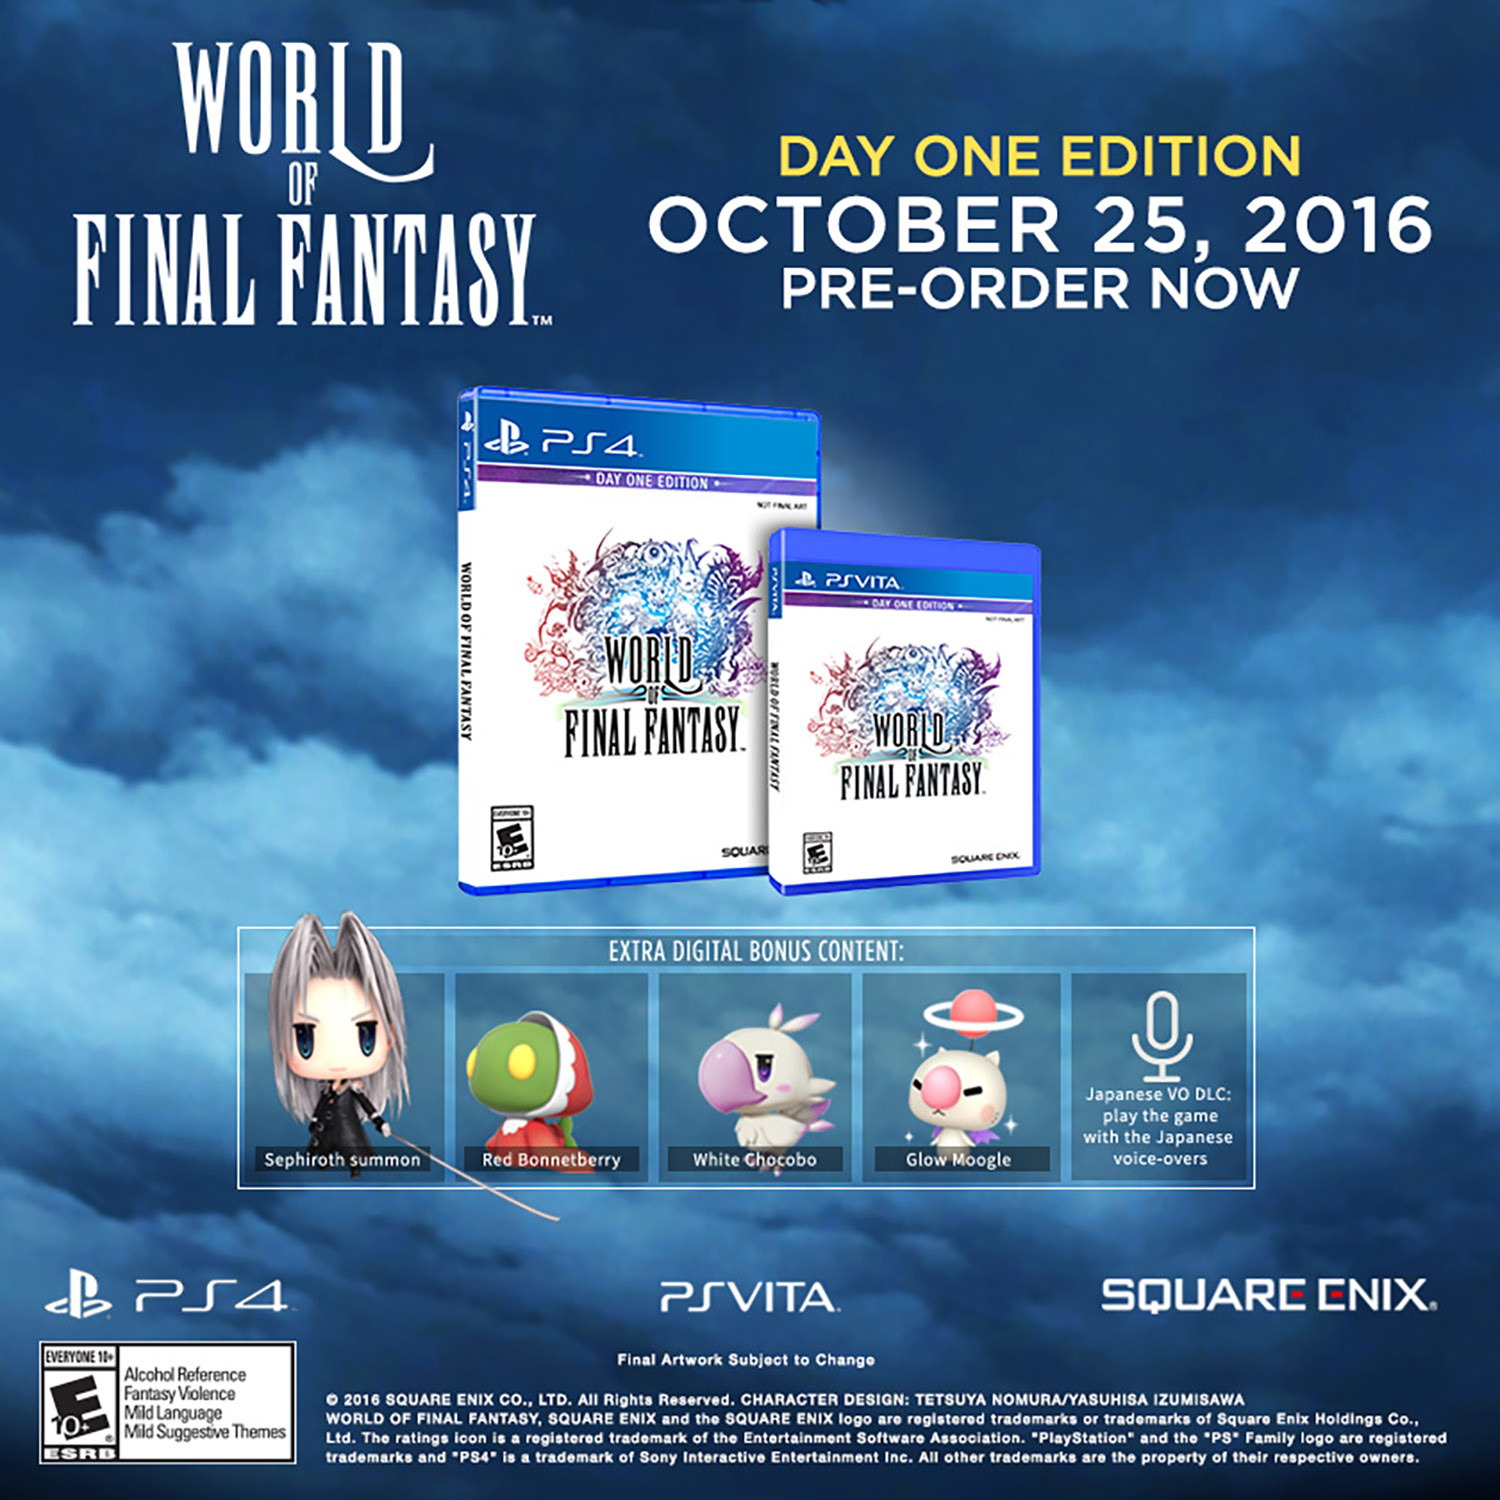 World of Final Fantasy, Square Enix, PlayStation Vita, REFURBISHED/PREOWNED